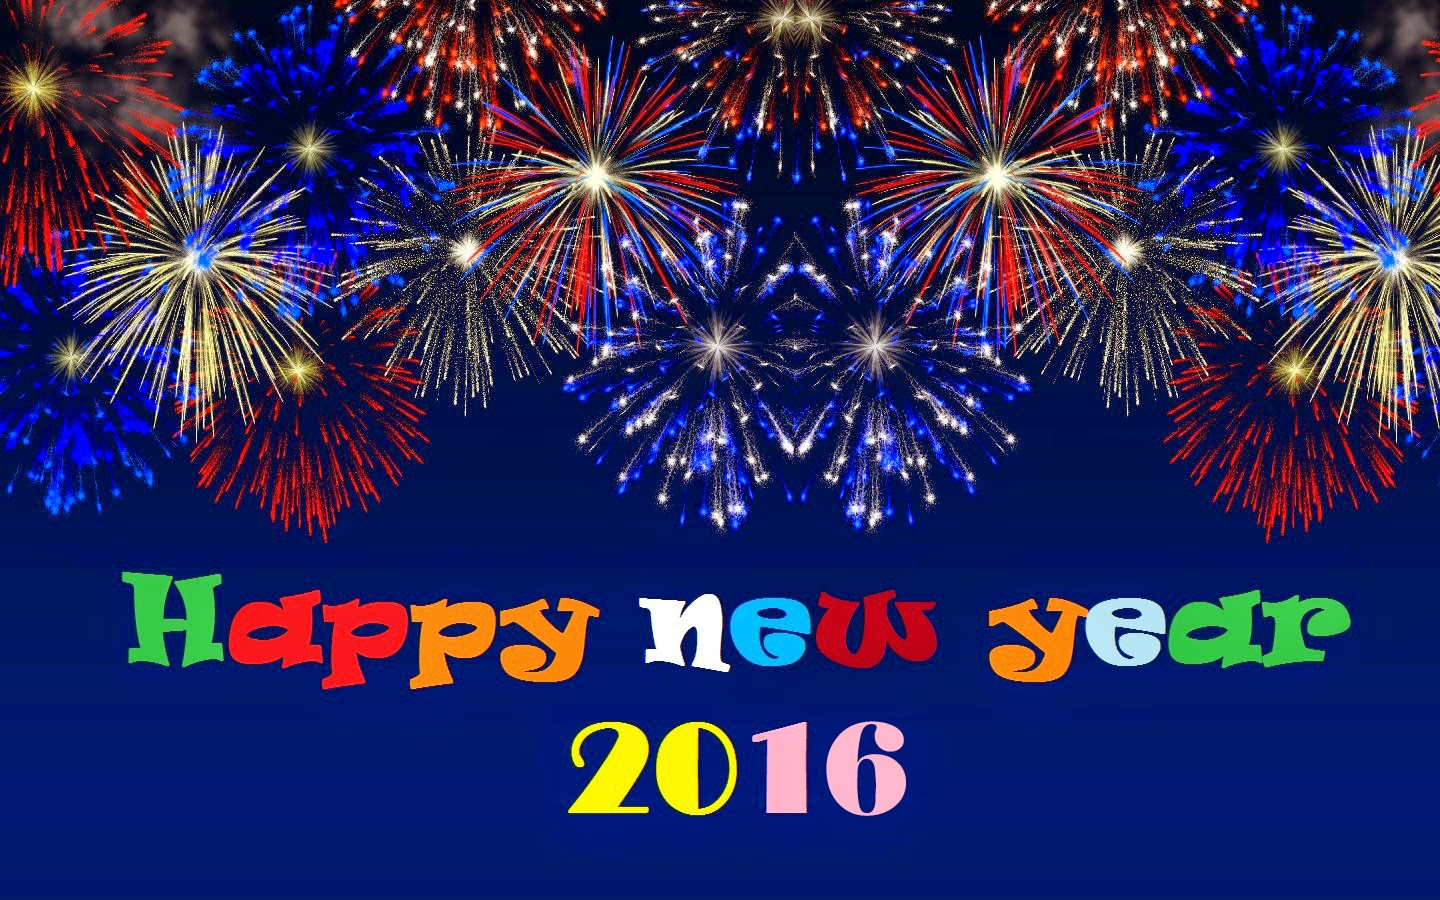 New year greetings images new year images 2016 new year greetings images kristyandbryce Image collections